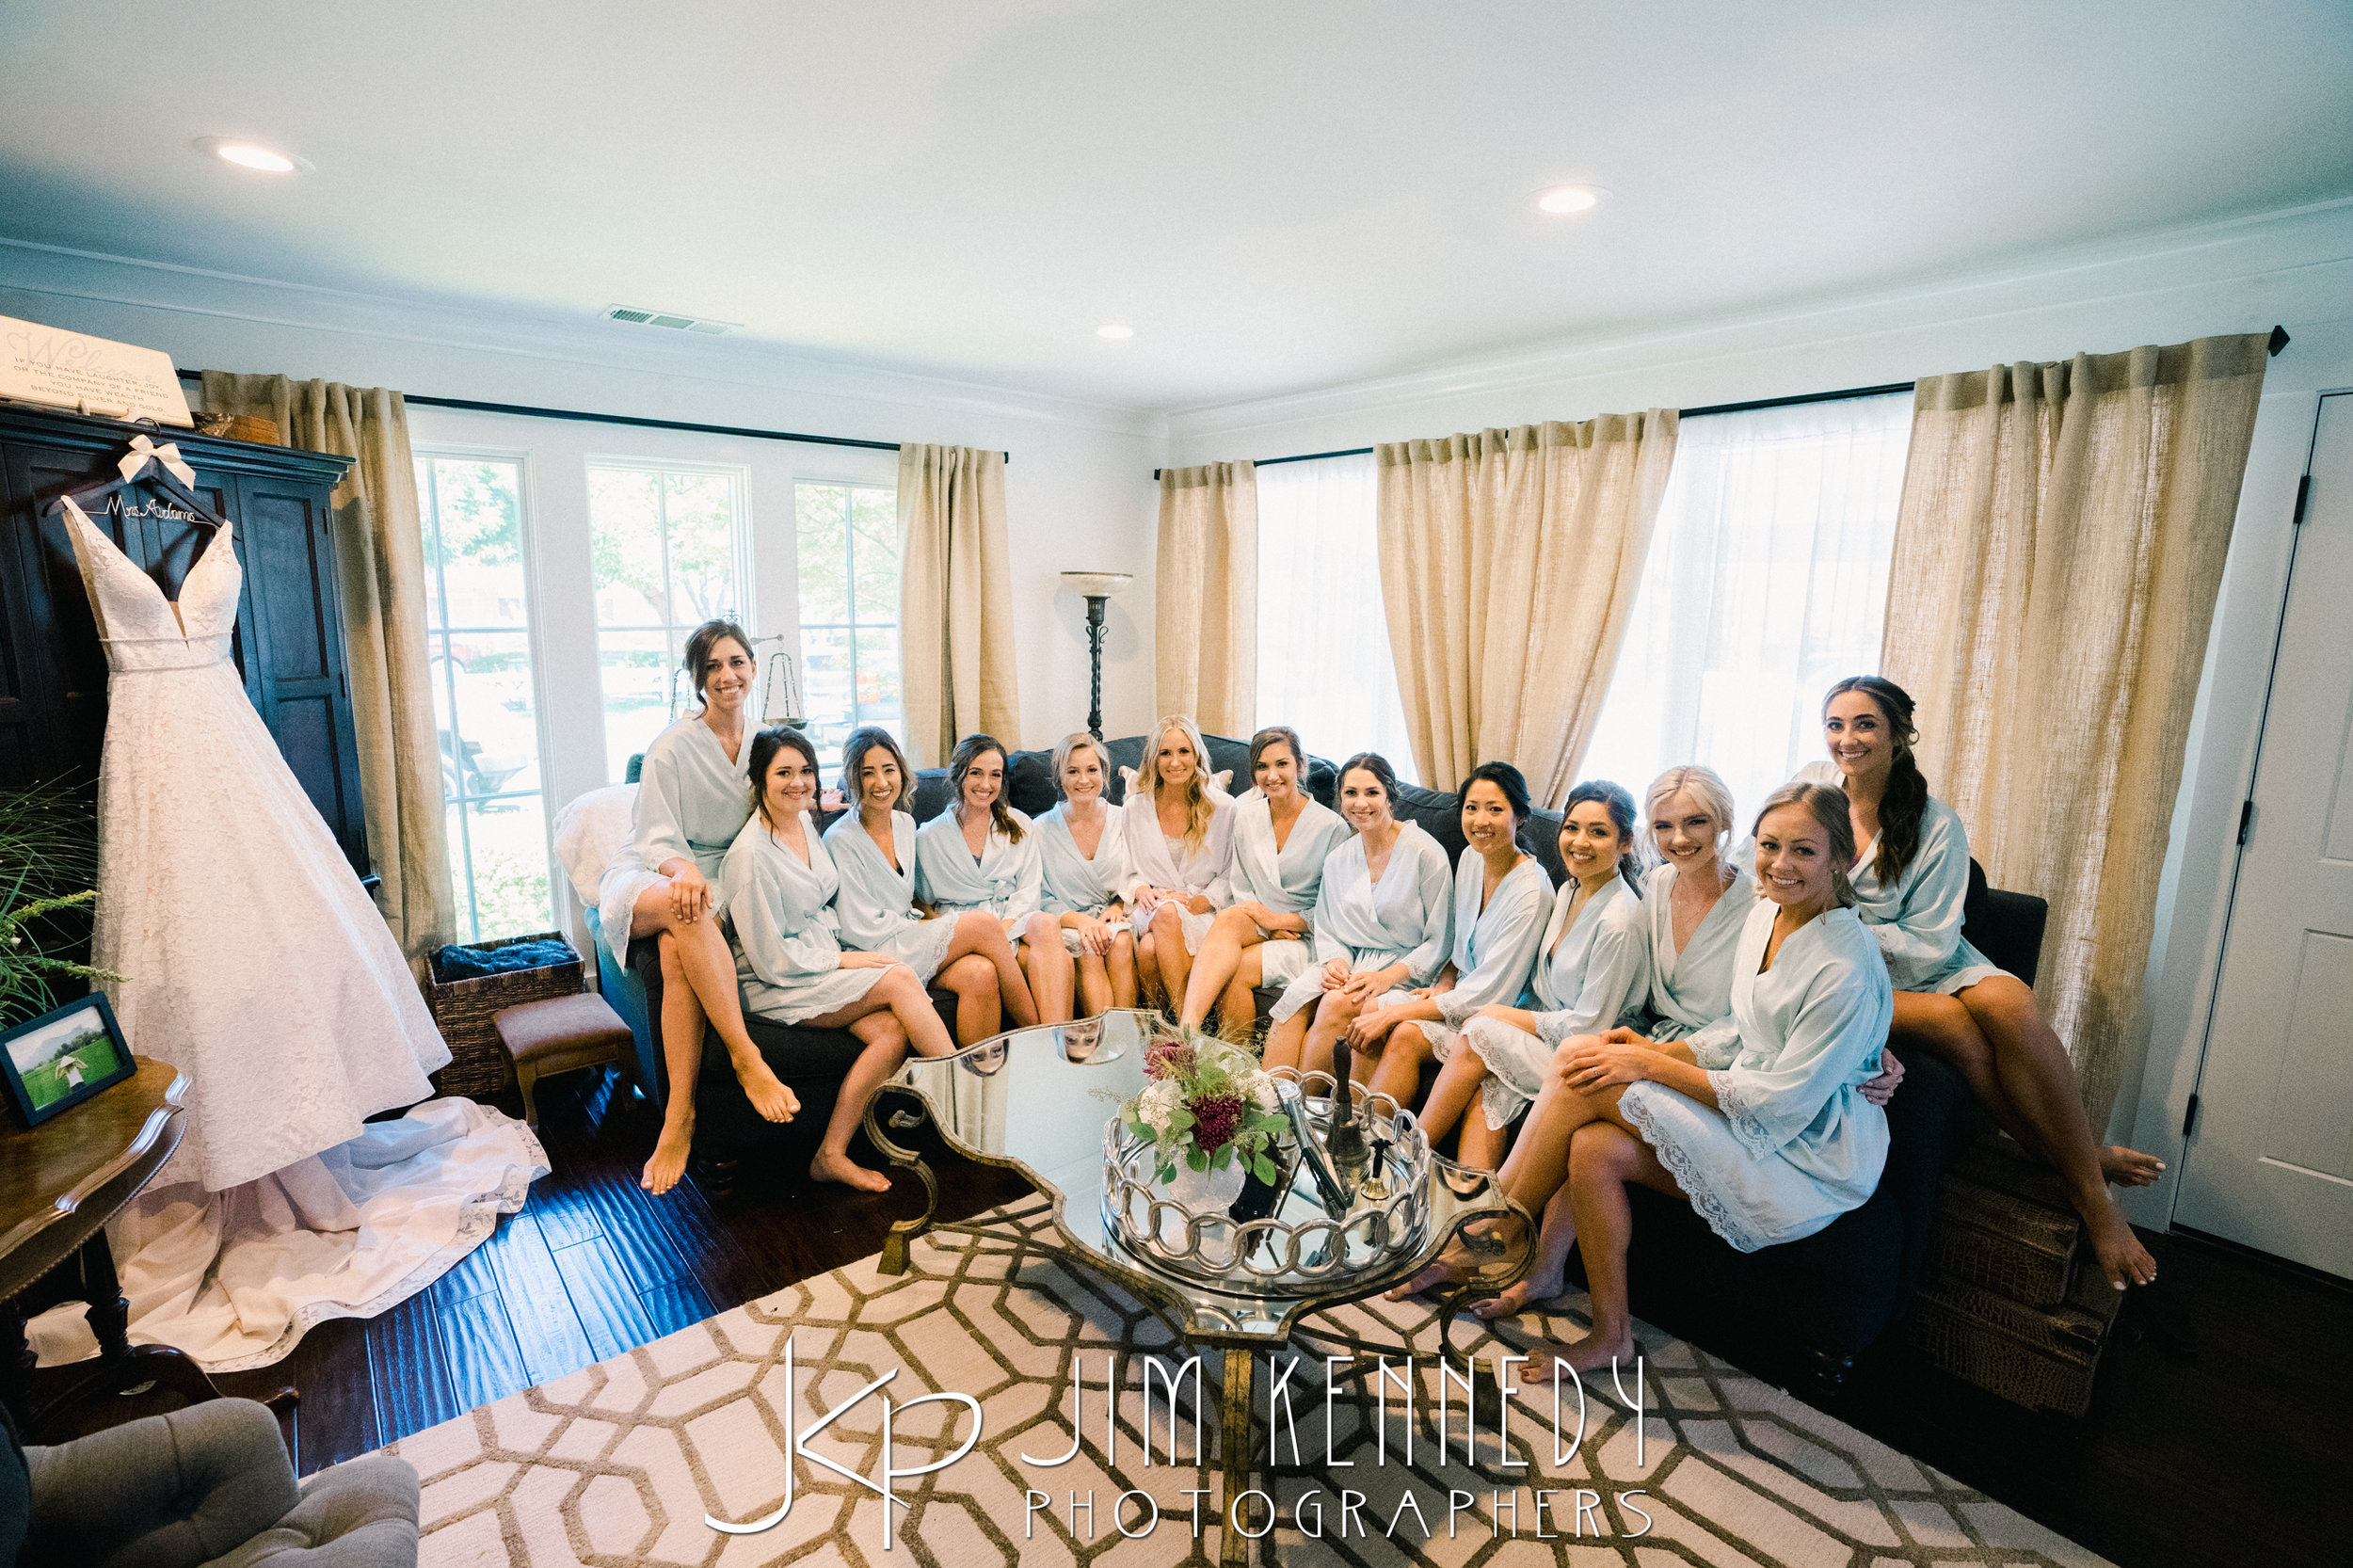 ardenwood-events-wedding-mackenzie_021.JPG